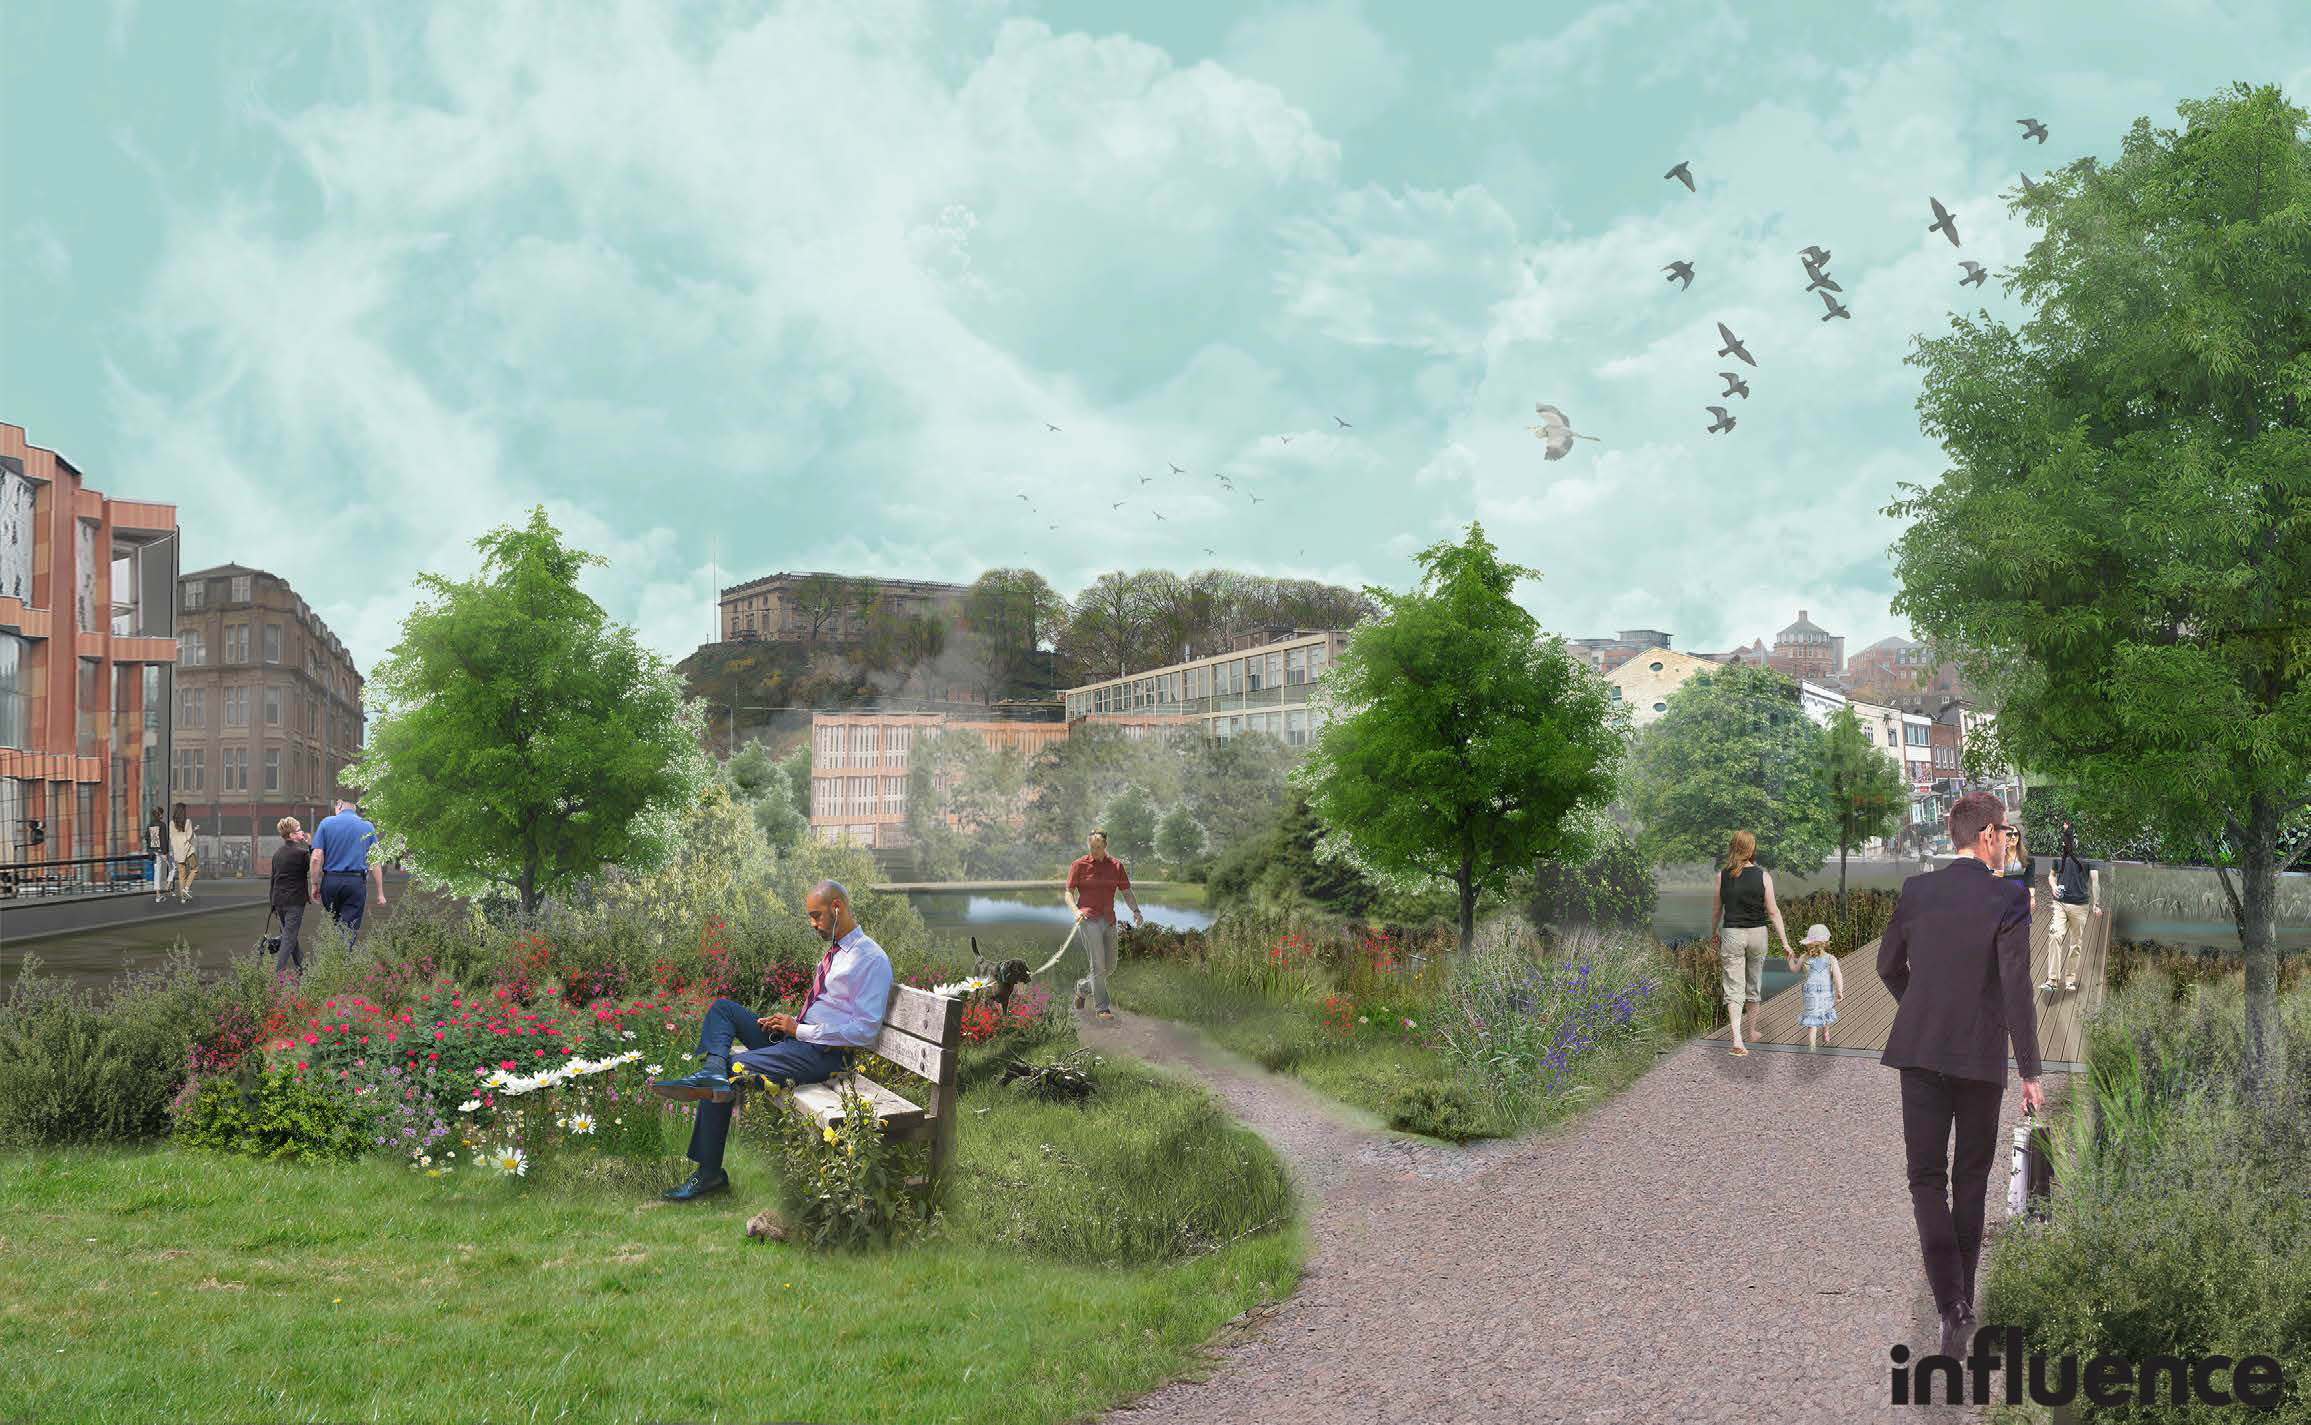 Wildlife Trust launches ambitious green vision for Nottingham